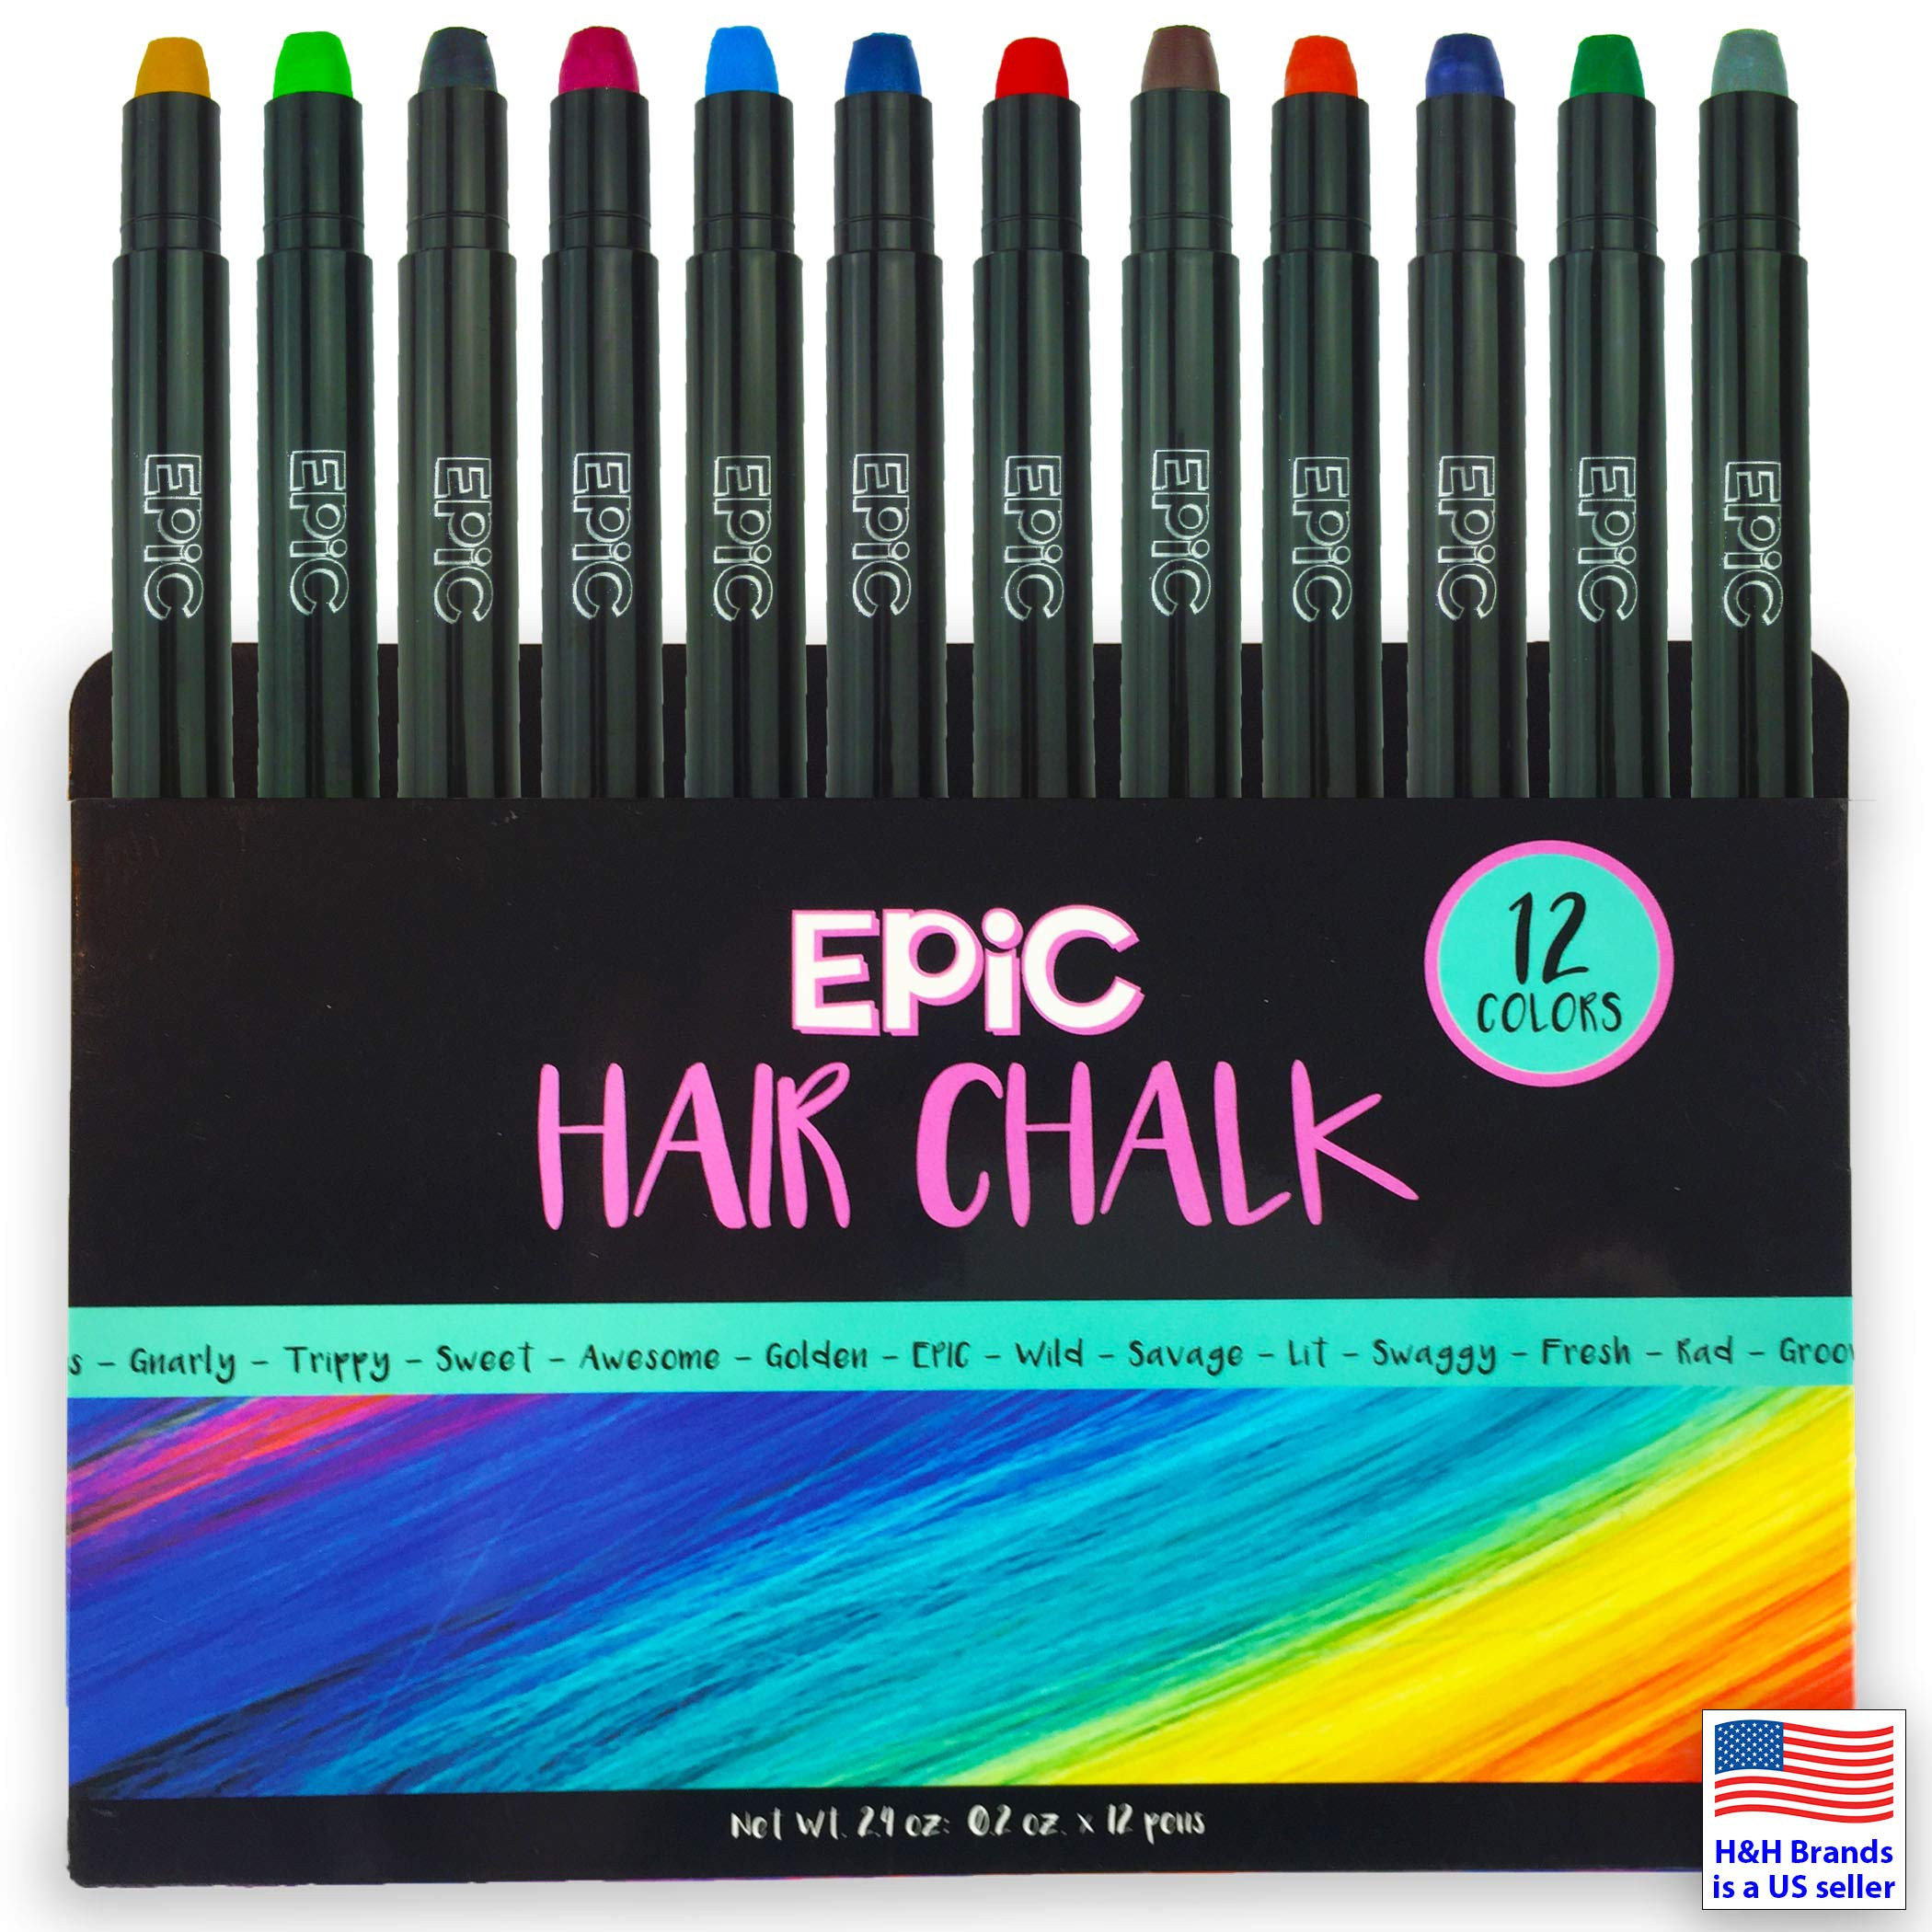 EPIC: Hair Chalk for Girls & Boys - 12 Large Pens - Vibrant Colors for Light & Dark Hair - Temporary Hair Color for Kids, Teens and Adults - Face Paint - Washable - Non Toxic - A Great Gift Idea